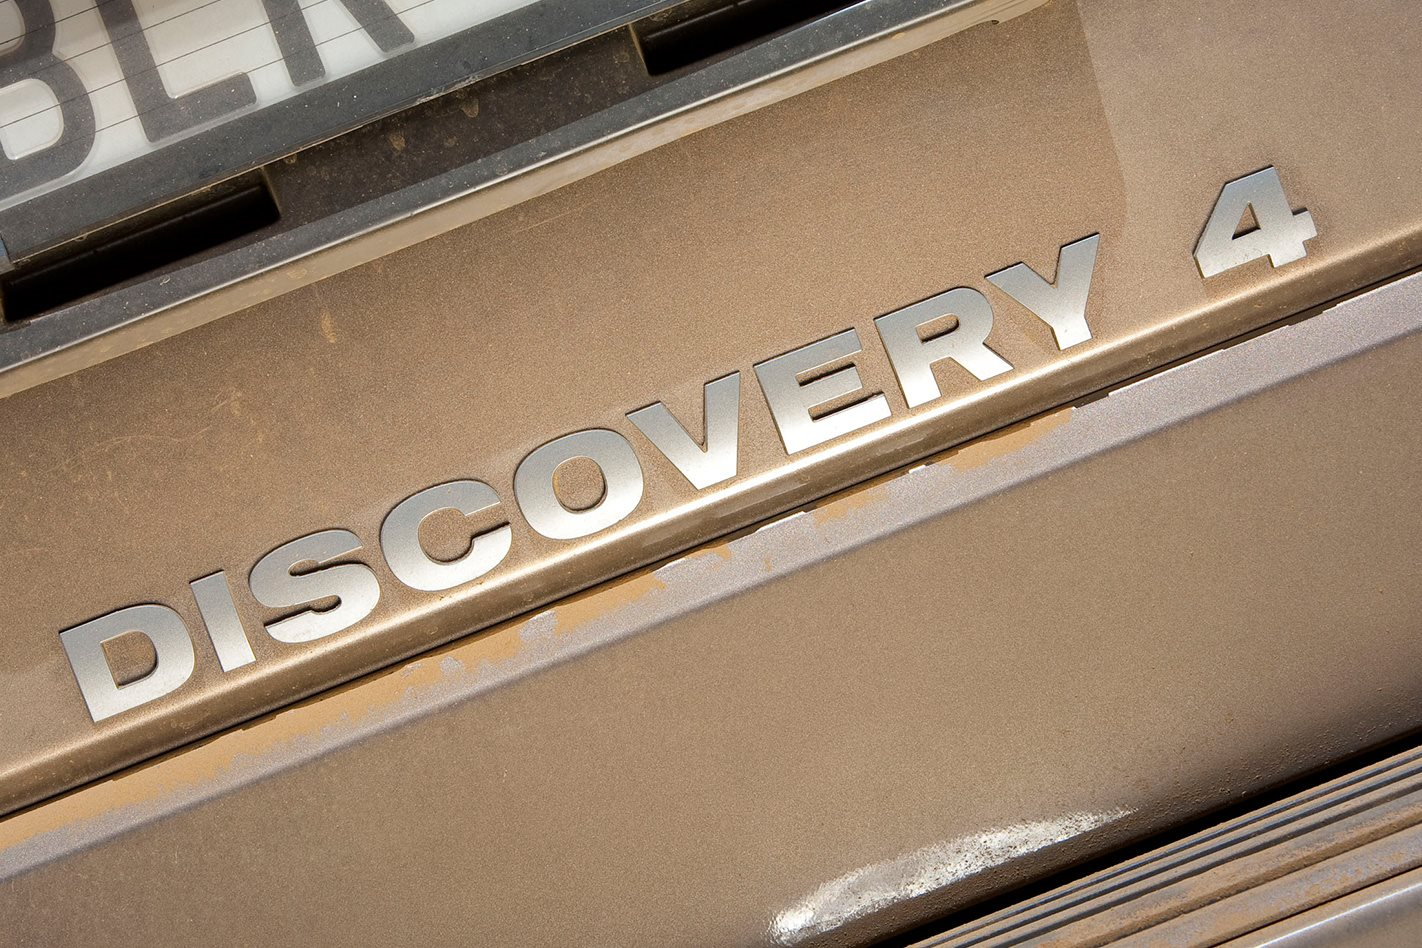 Land Rover Discoverery 4 badge